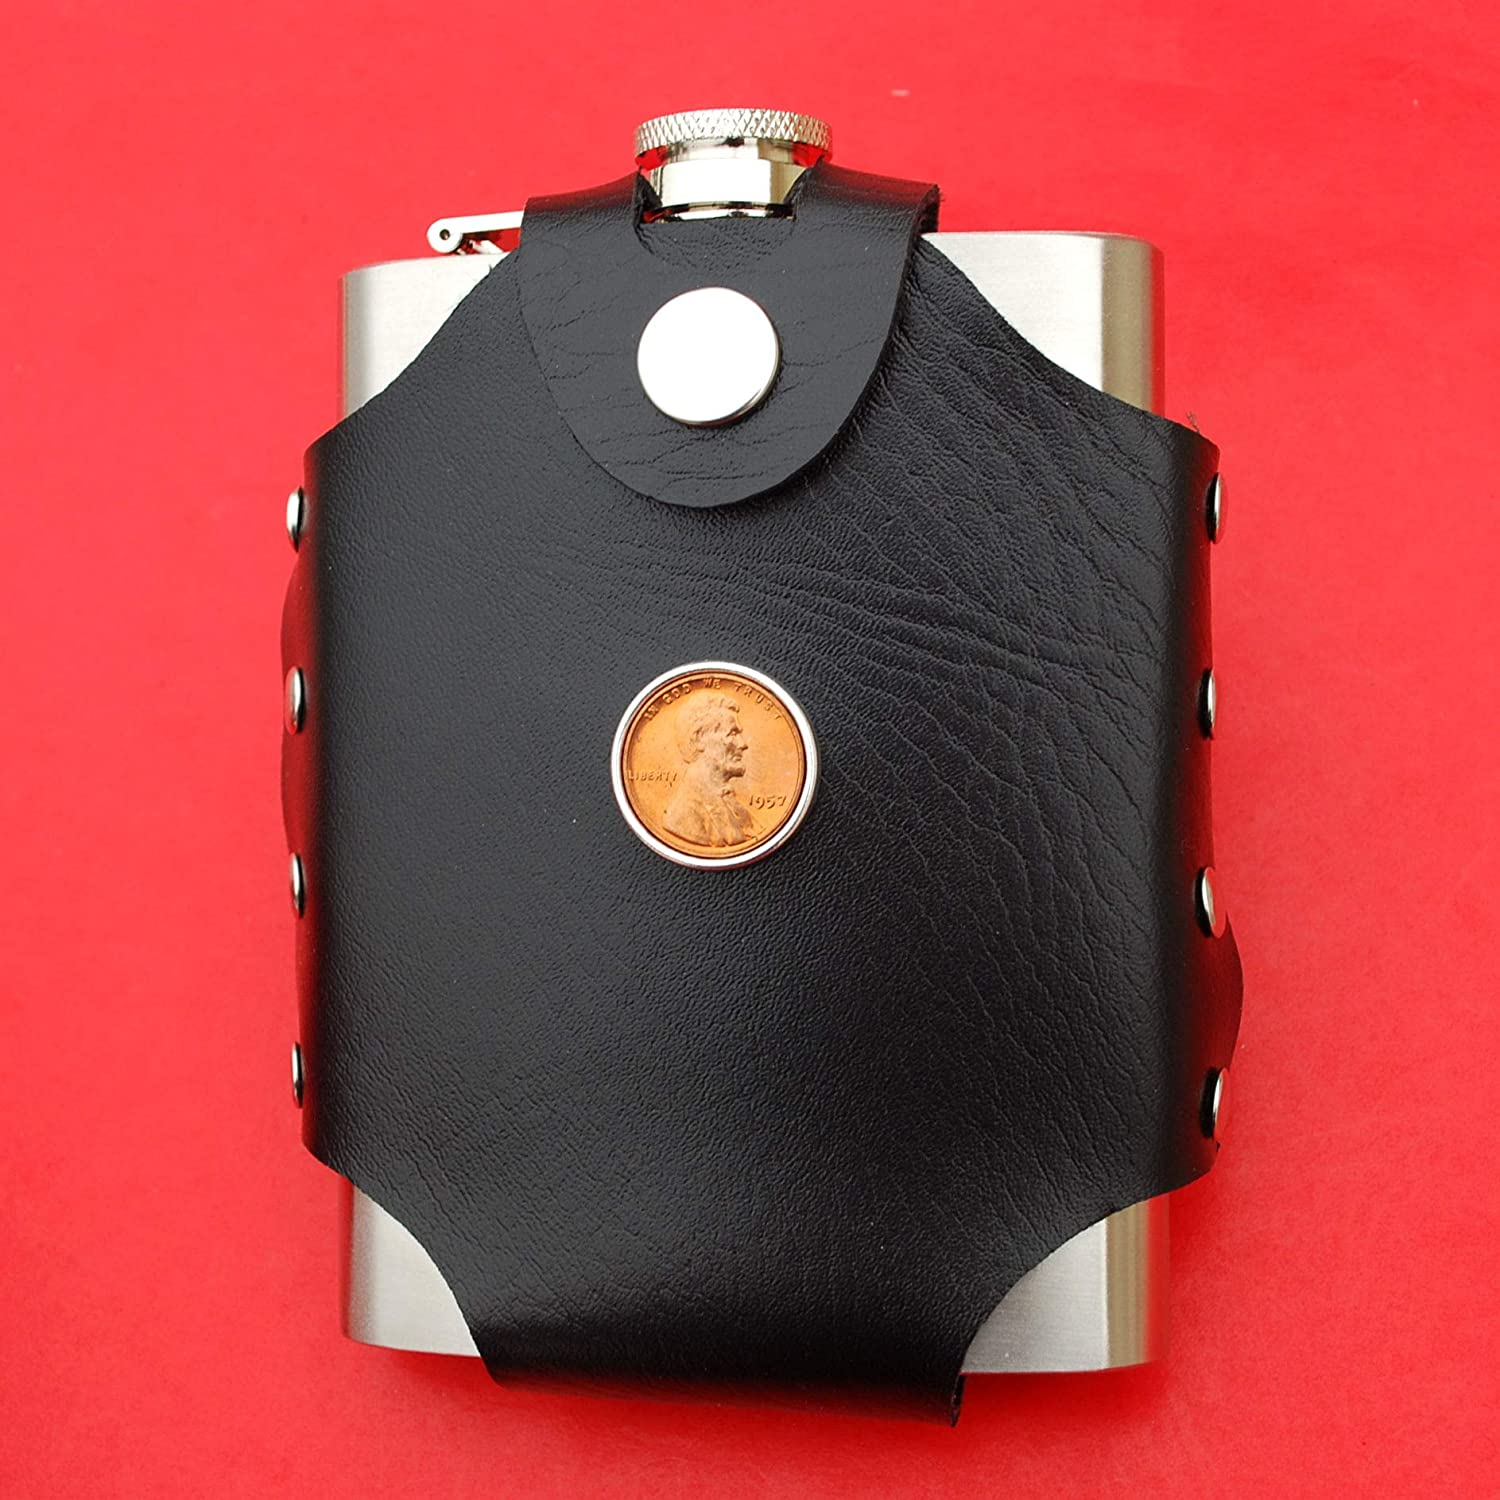 US 1957 Lincoln Penny BU Uncirculated 1 Cent Coin Leak Proof Black PU Leather Wrapped Stainless Steel 8 Oz Hip Flask Water - Lucky Penny Wine etc Liquor